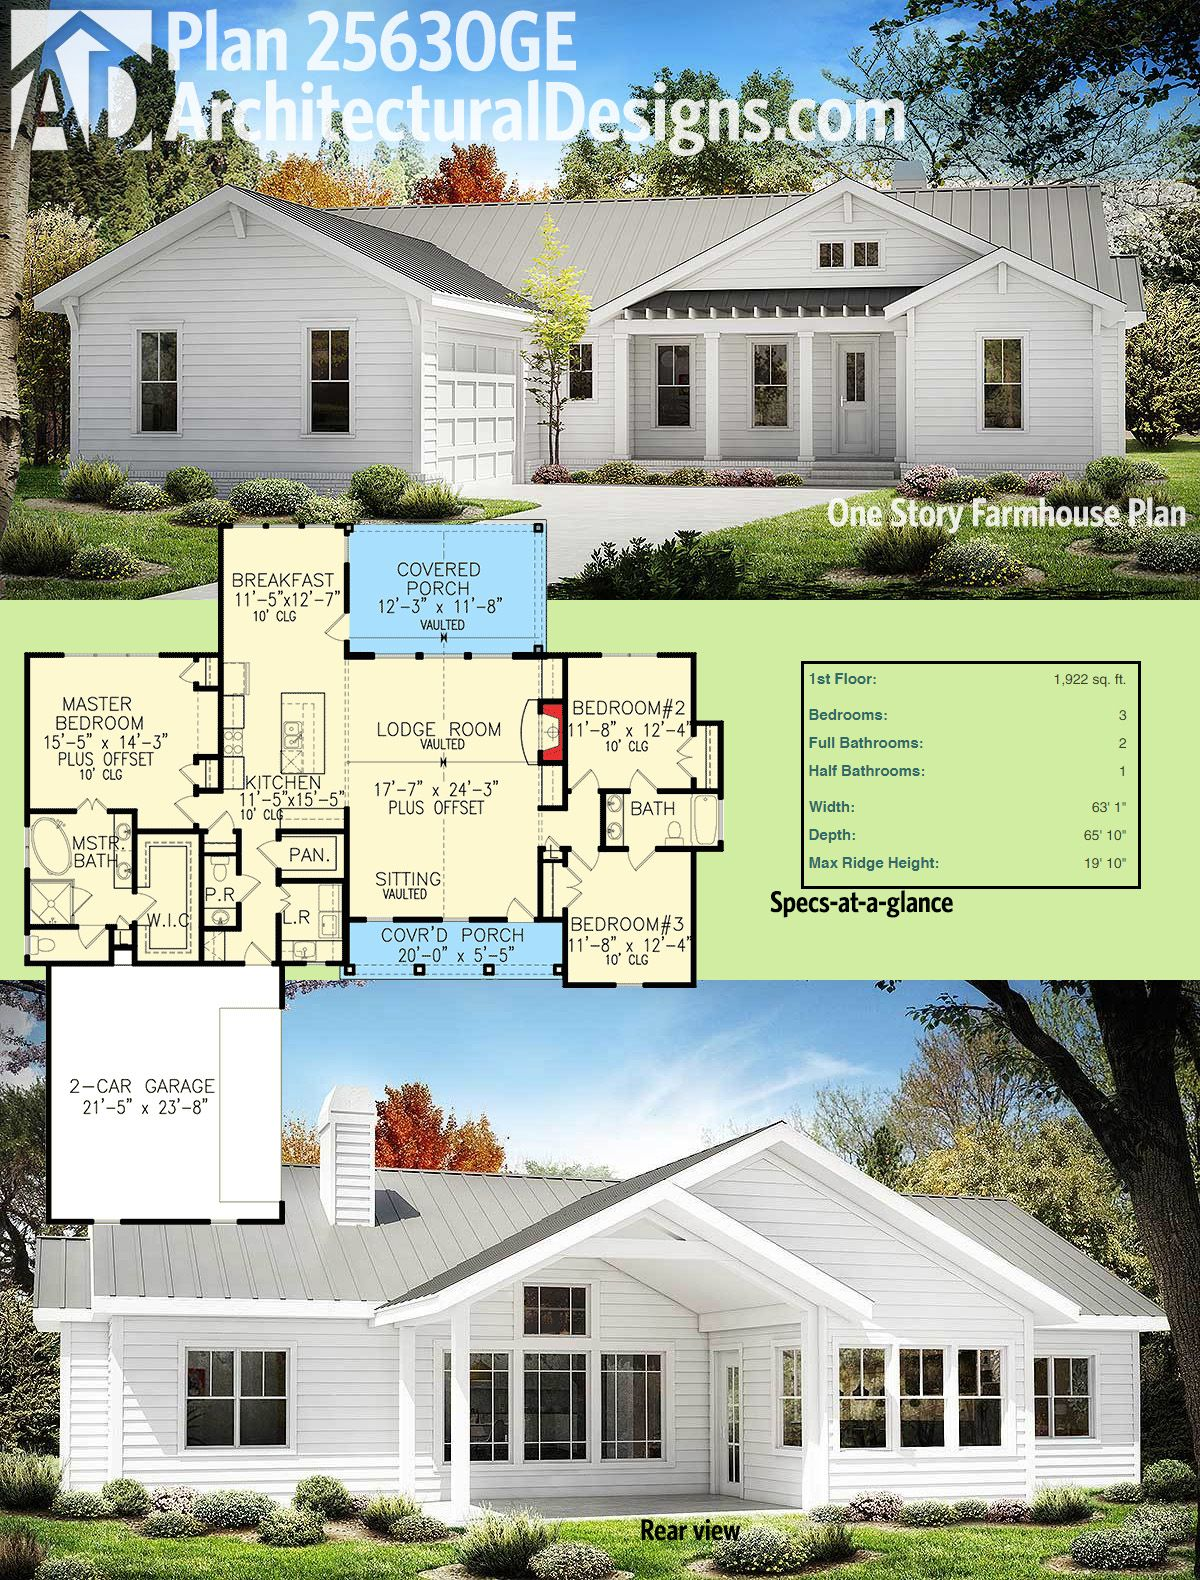 Plan 25630ge one story farmhouse plan farmhouse plans One story farmhouse plans